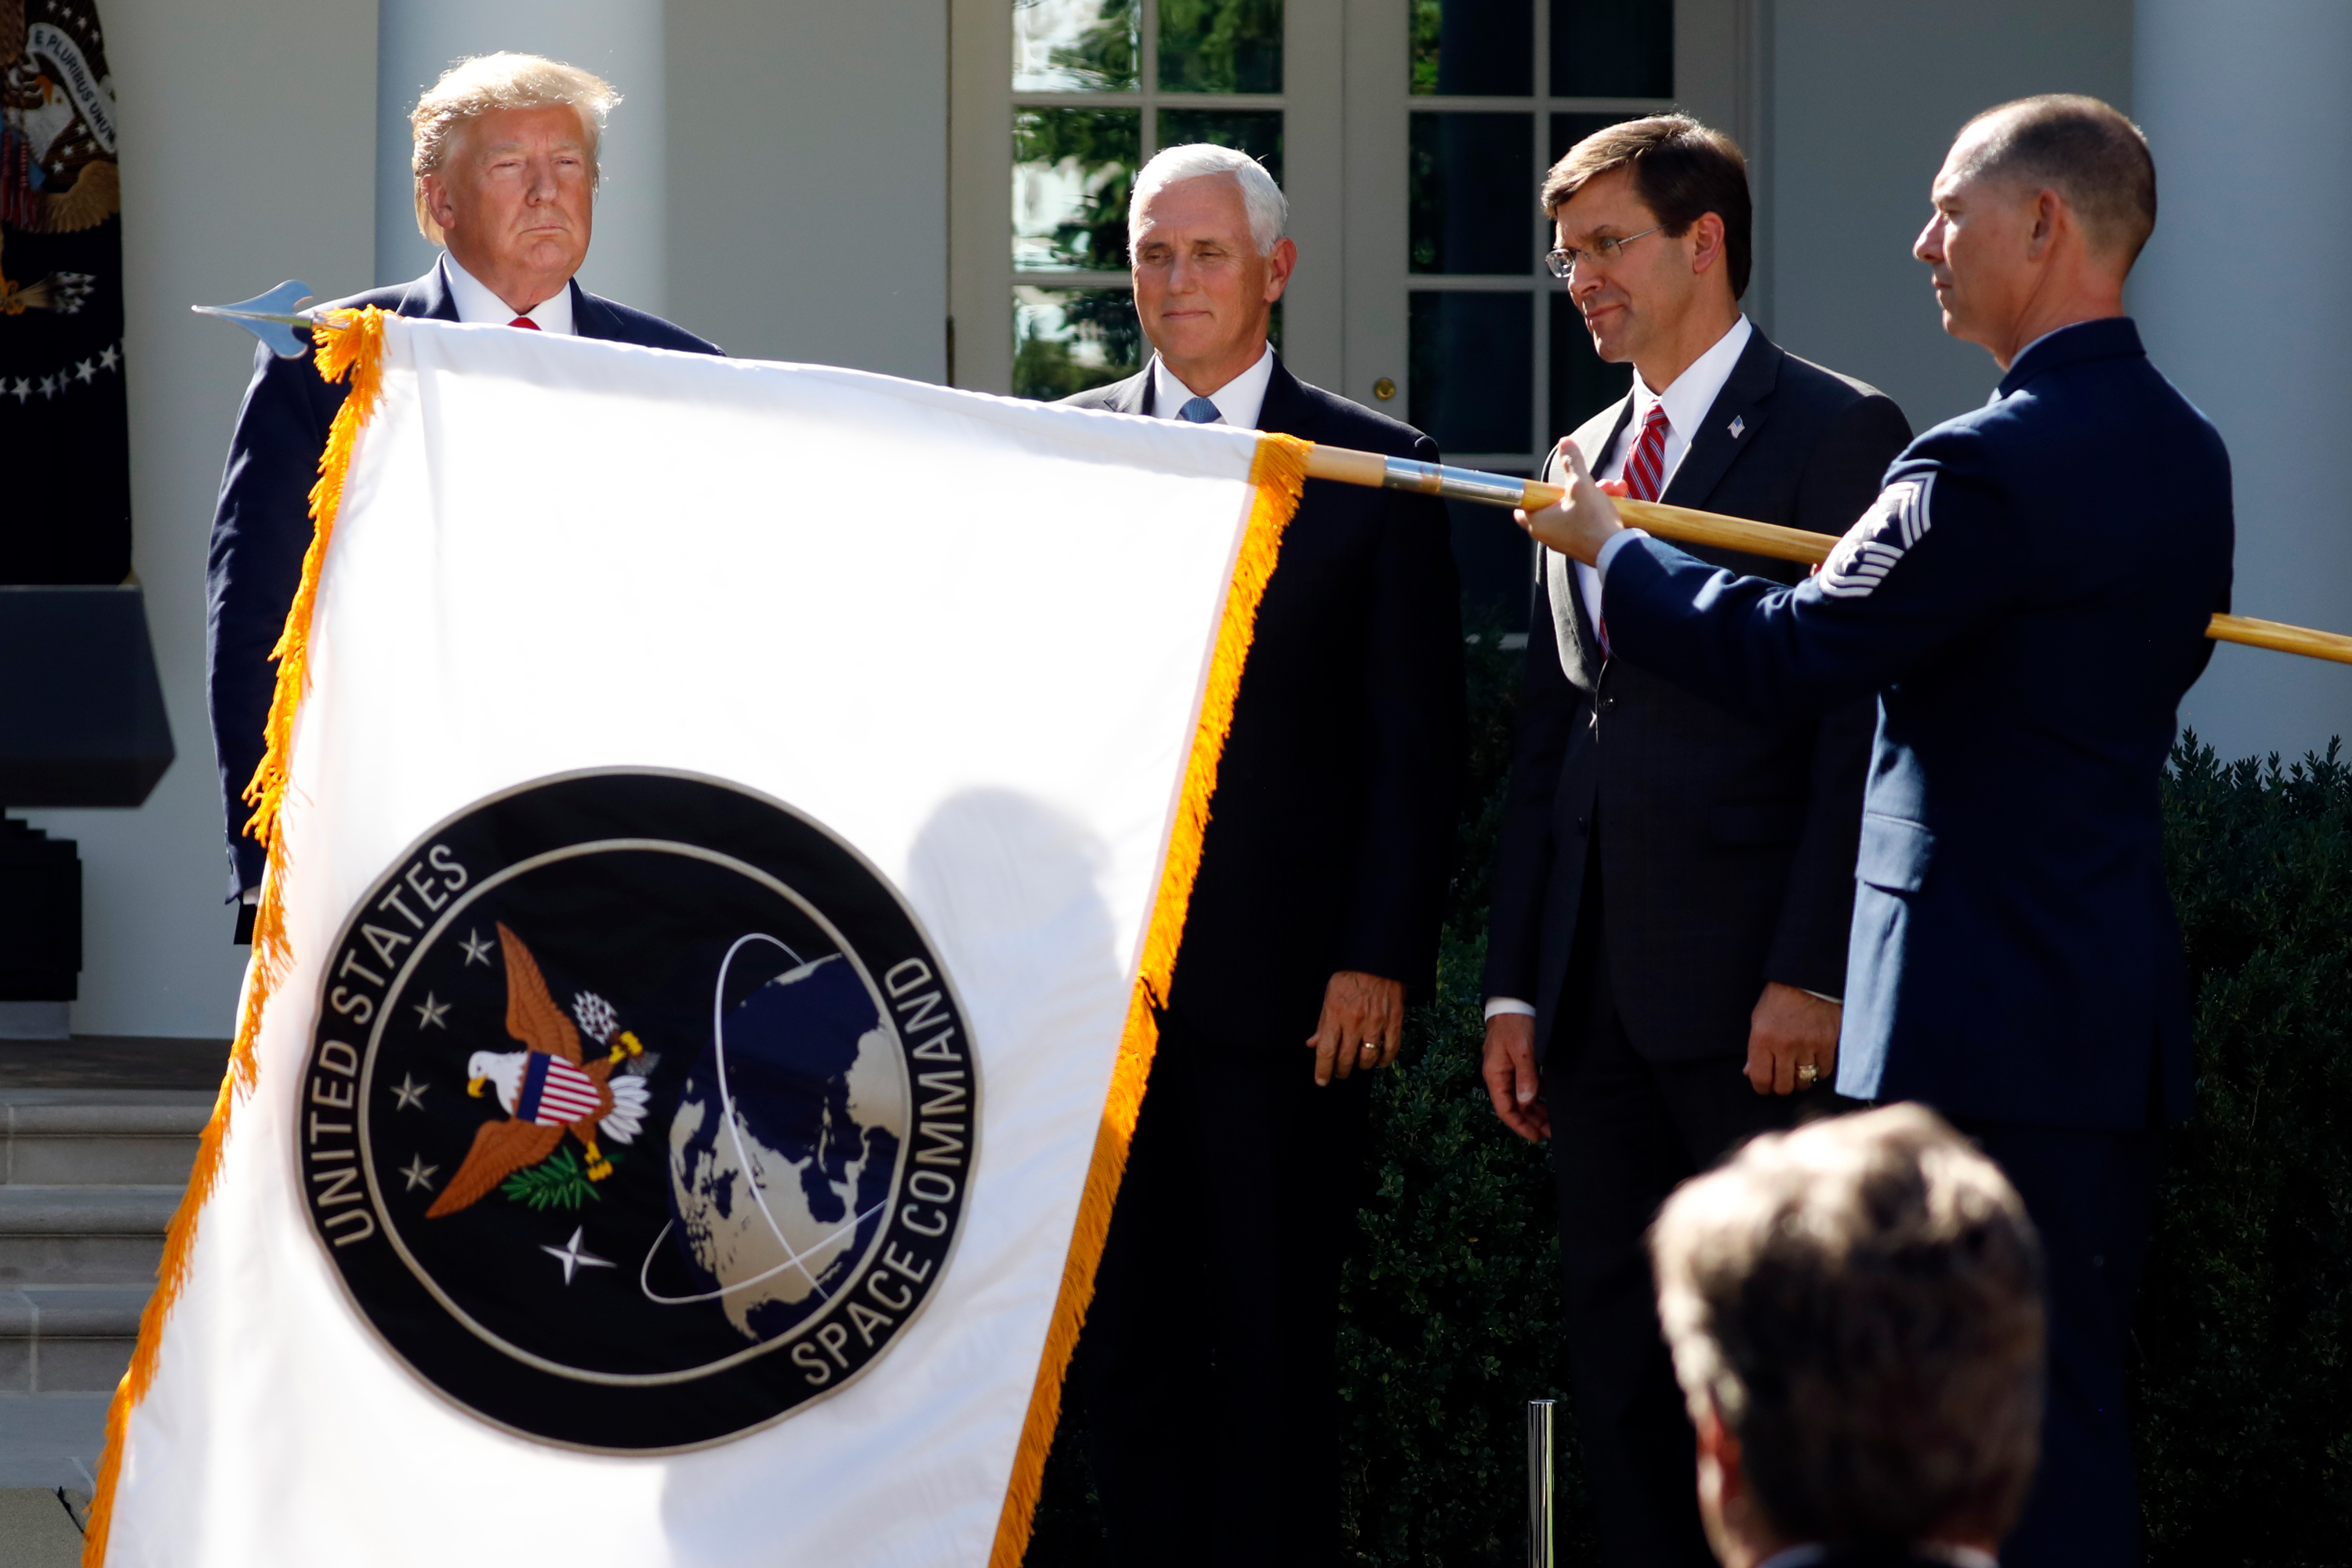 President Donald Trump watches with Vice President Mike Pence and Defense Secretary Mark Esper as the flag for U.S. space Command is unfurled as Trump announces the establishment of the U.S. Space Command in the Rose Garden of the White House in Washington, Thursday, Aug. 29, 2019.